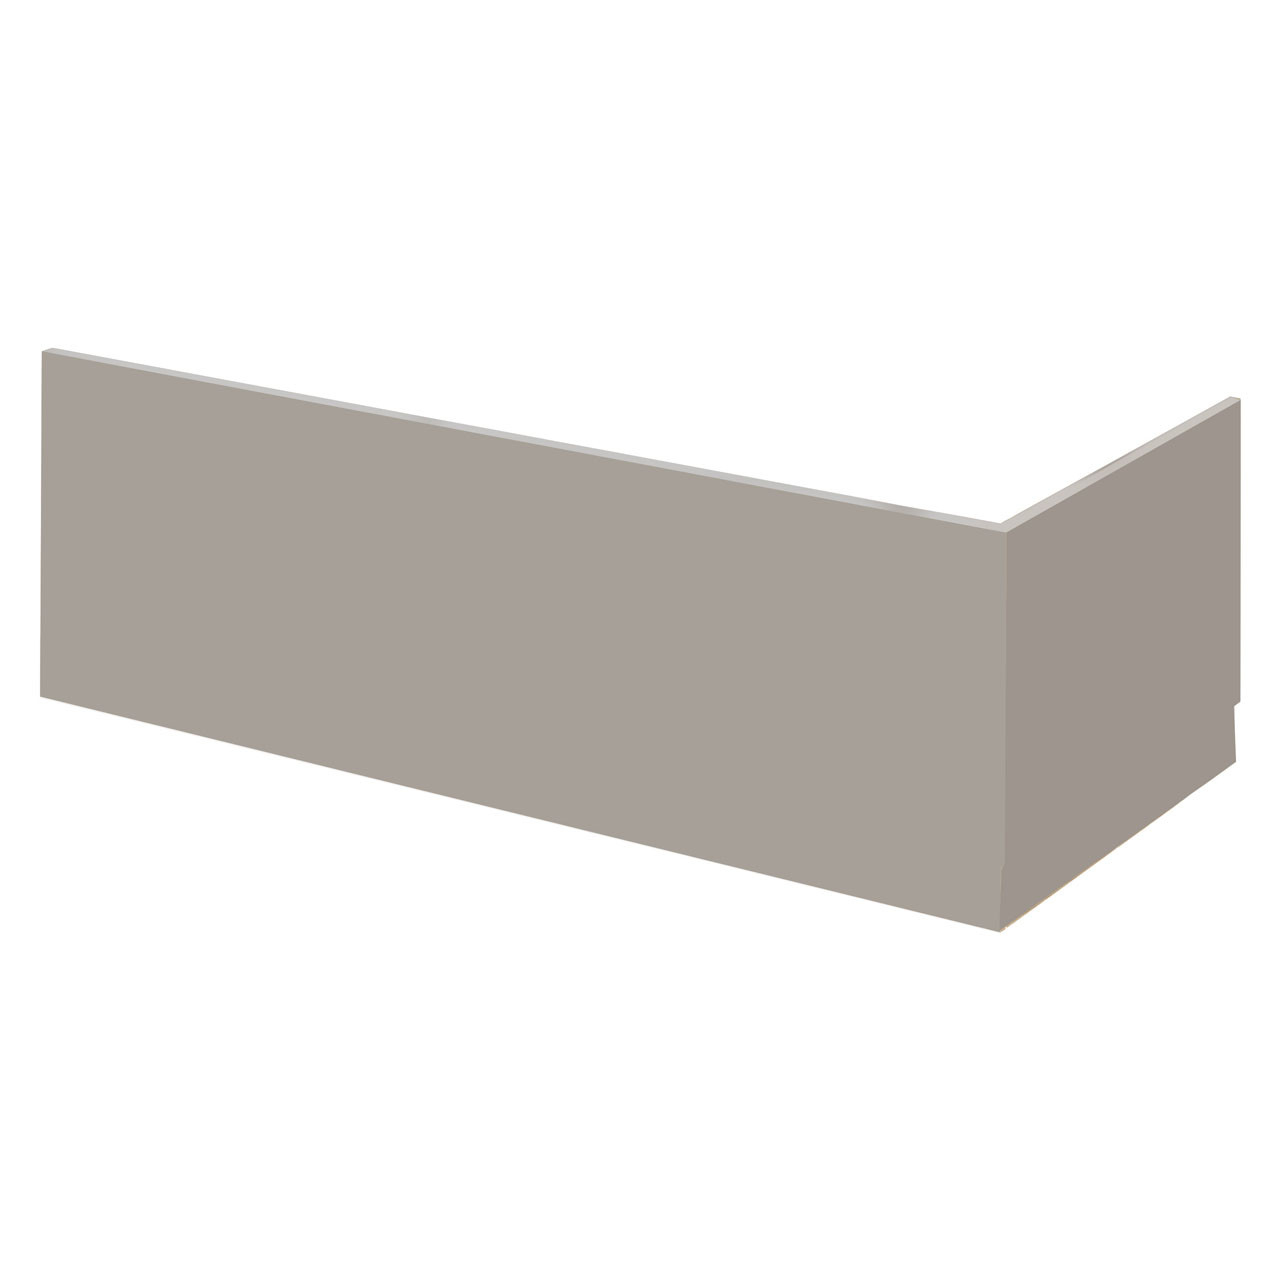 Nuie Athena Stone Grey 1700mm Front Bath Panel - MPC405